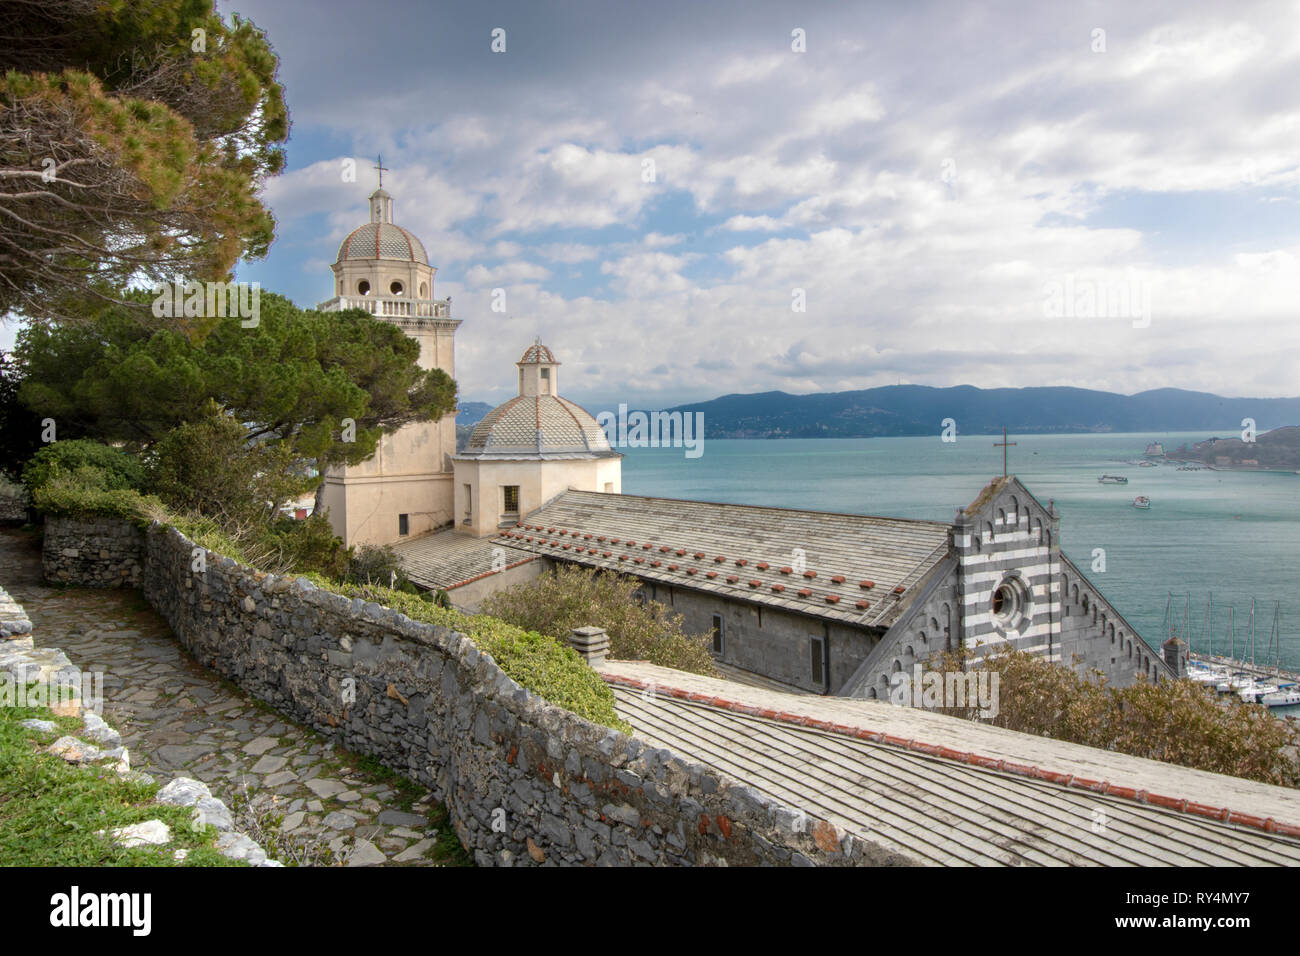 Scenic view of Porto Venere and gulf of Poets as seen from the hill - Stock Image